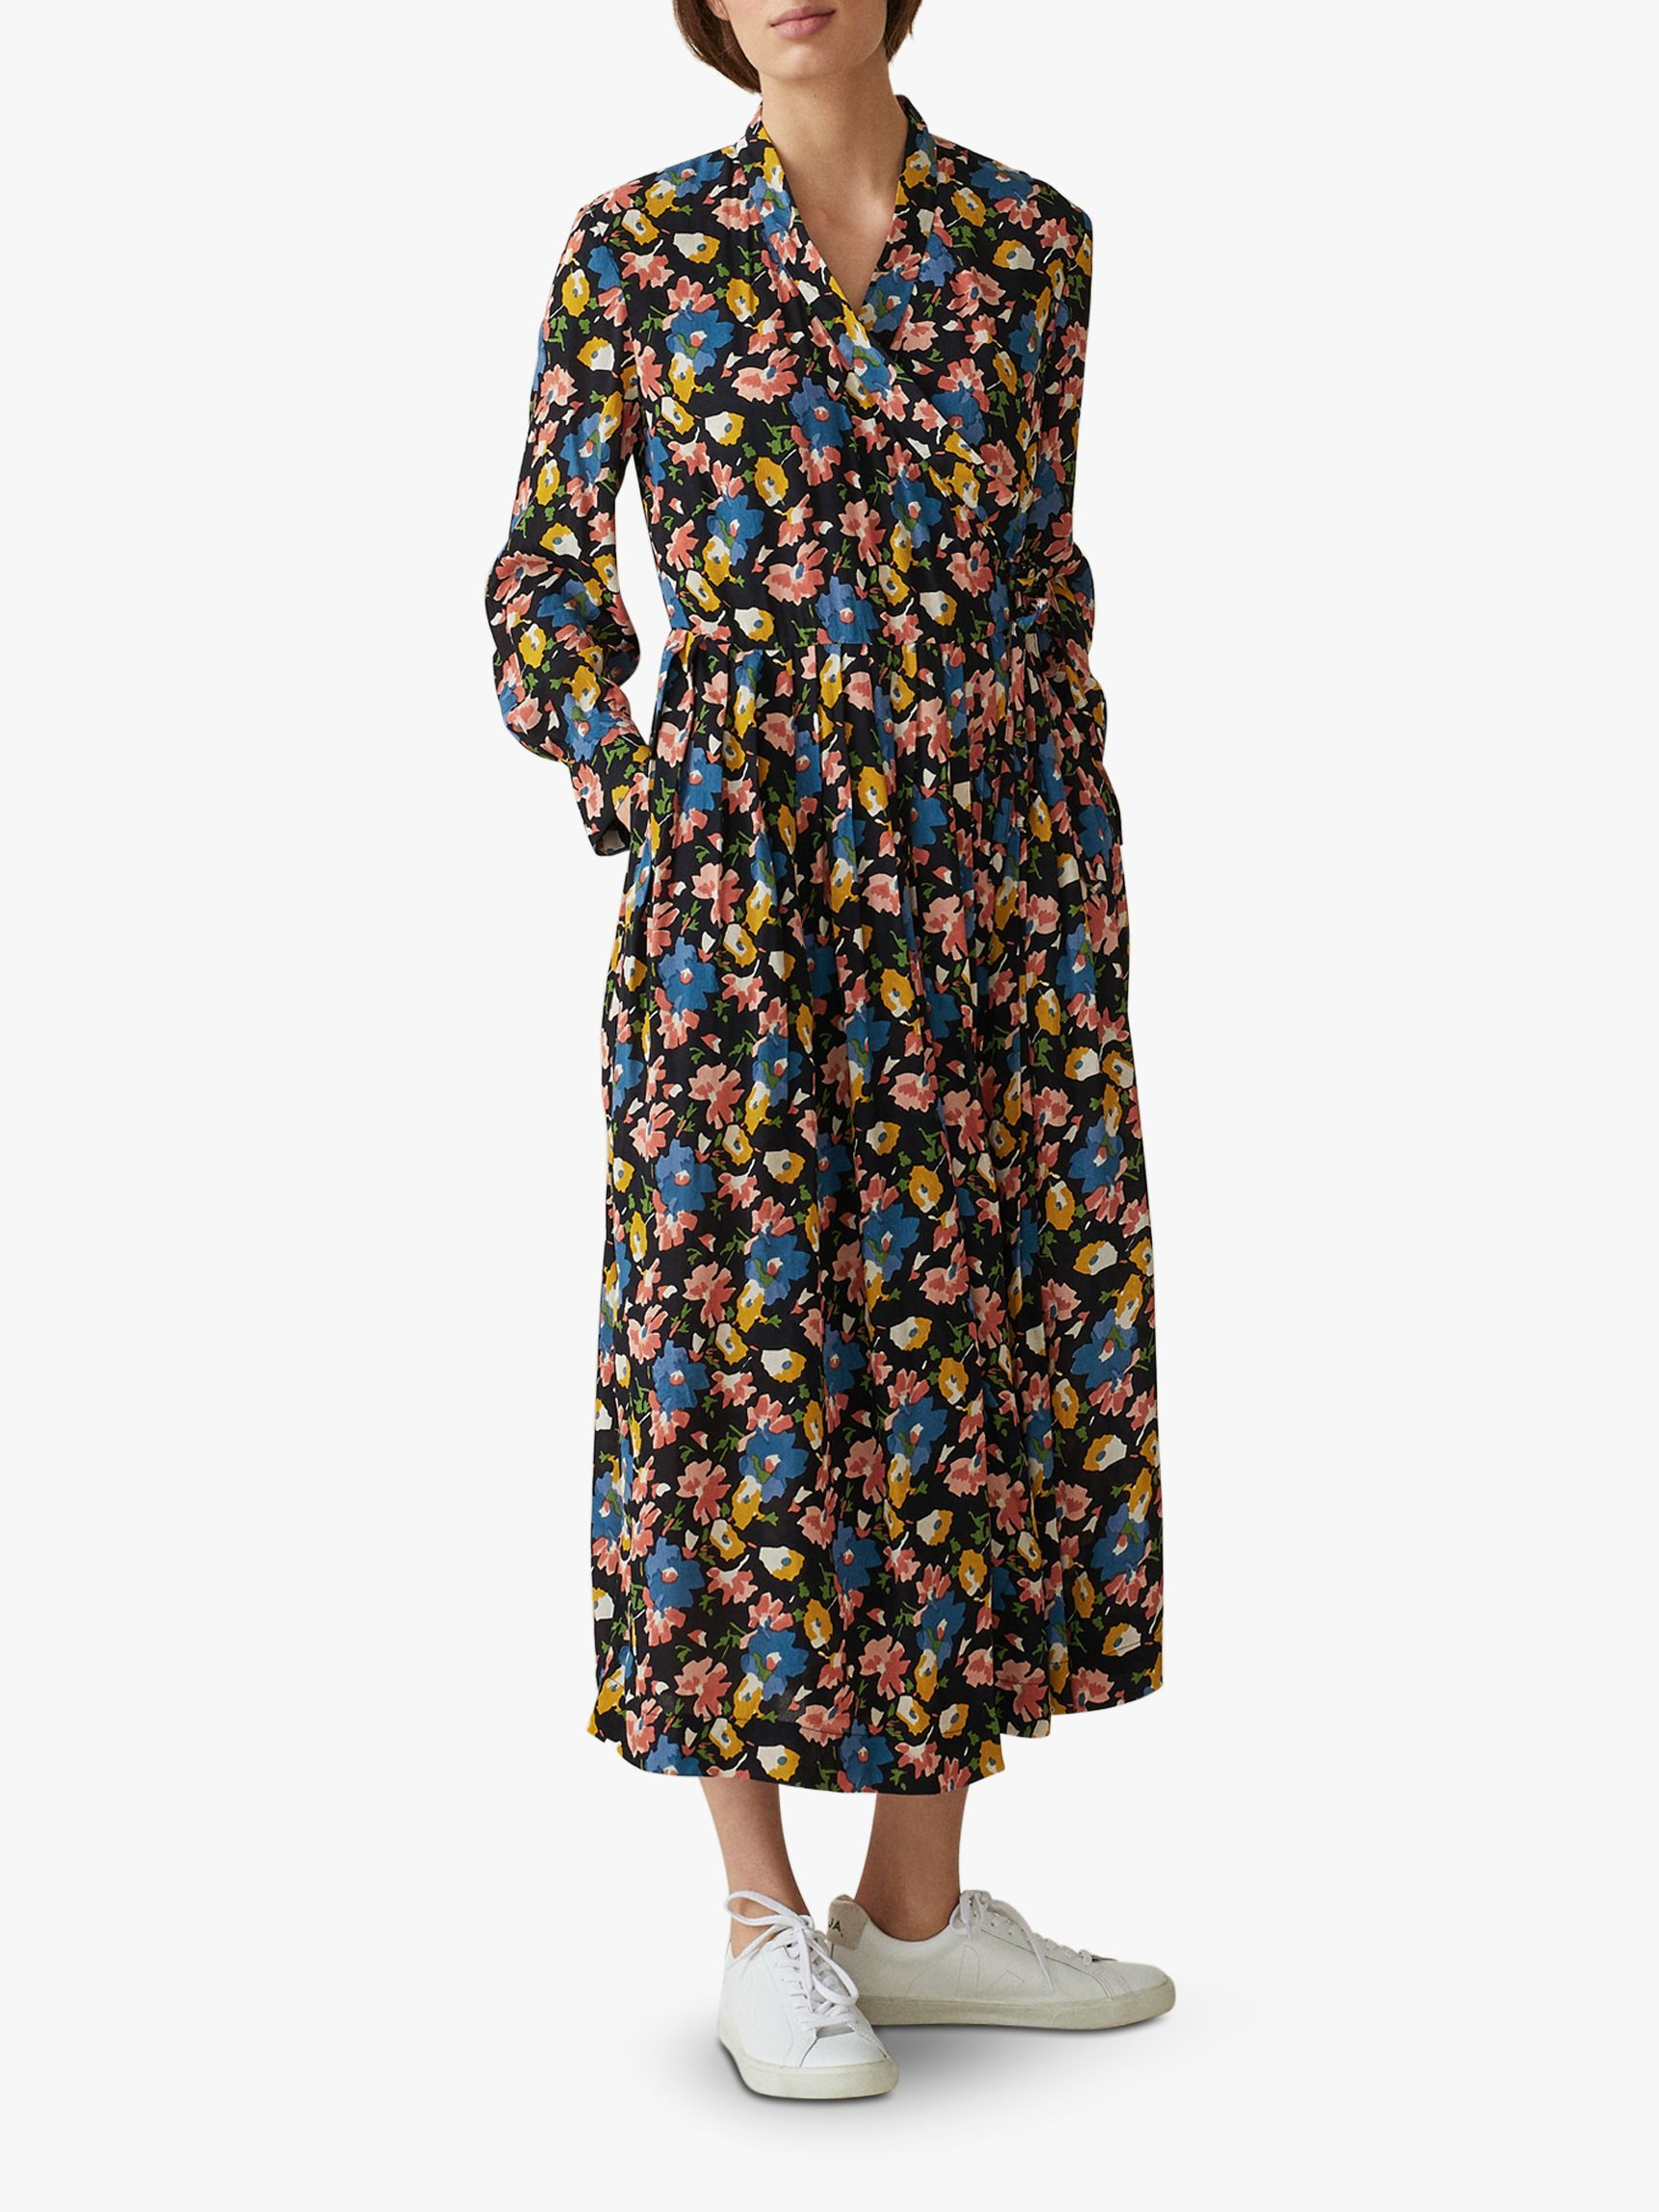 Spring Dresses Spring Dress Trends To Buy Now